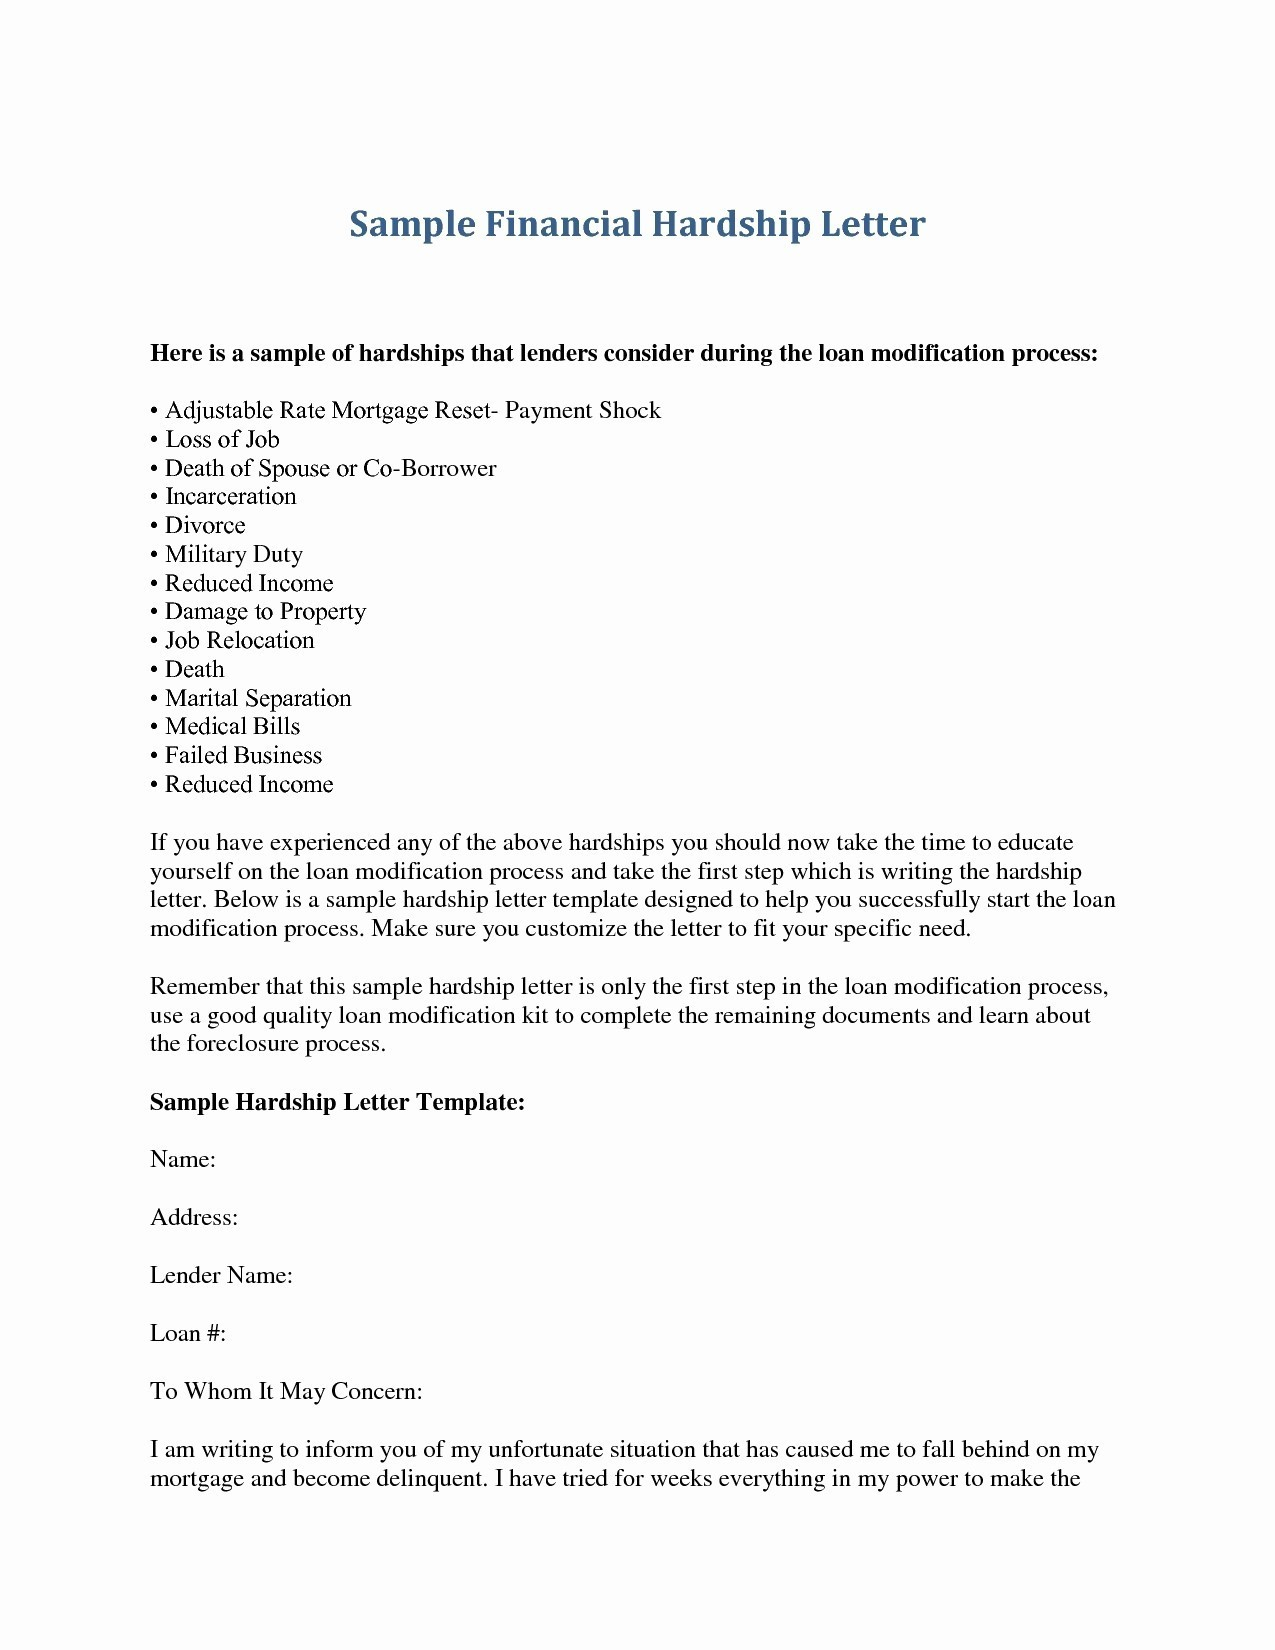 Mortgage Payment Shock Letter Template - Sample School Character Certificate Archives Refrence Sample